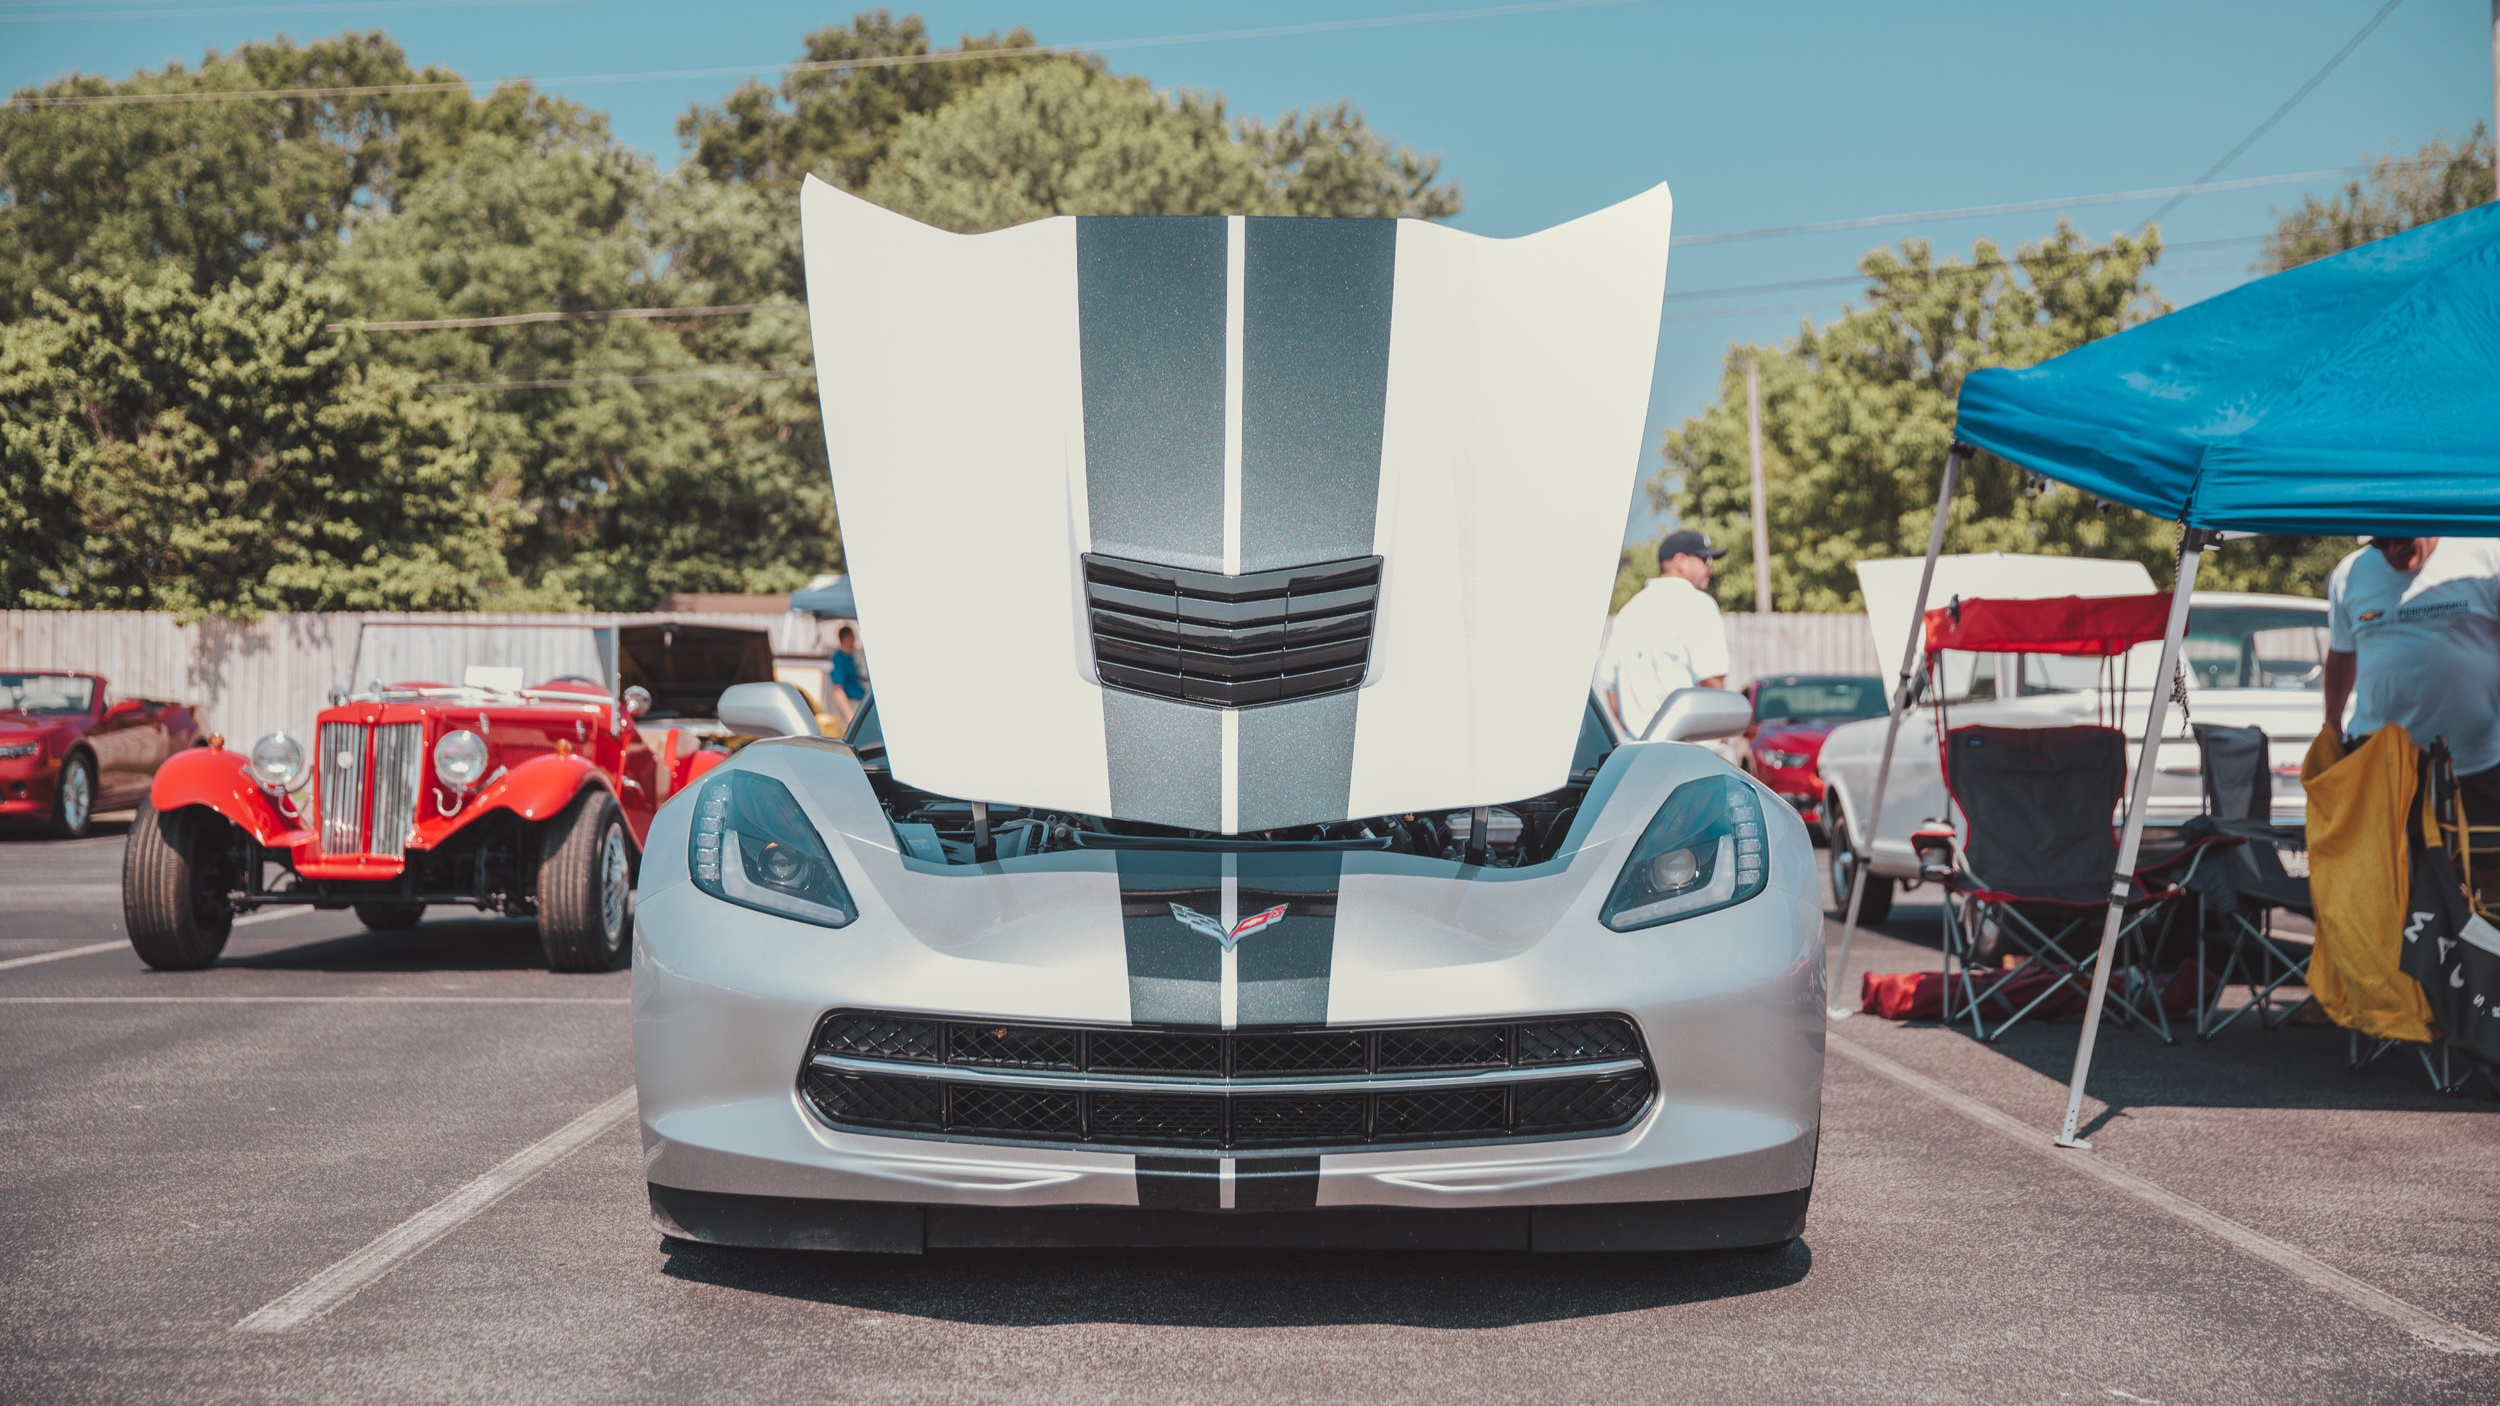 Car Show - Arrive anytime from 7:30 and 8:30 AM to register for the Car Show. Follow on-campus signage for registration and parking.Car Show: 9:30 AM to 1:30 PM.Awards:• Best Bike• Best Classic• Best Modern• Pastor's Choice